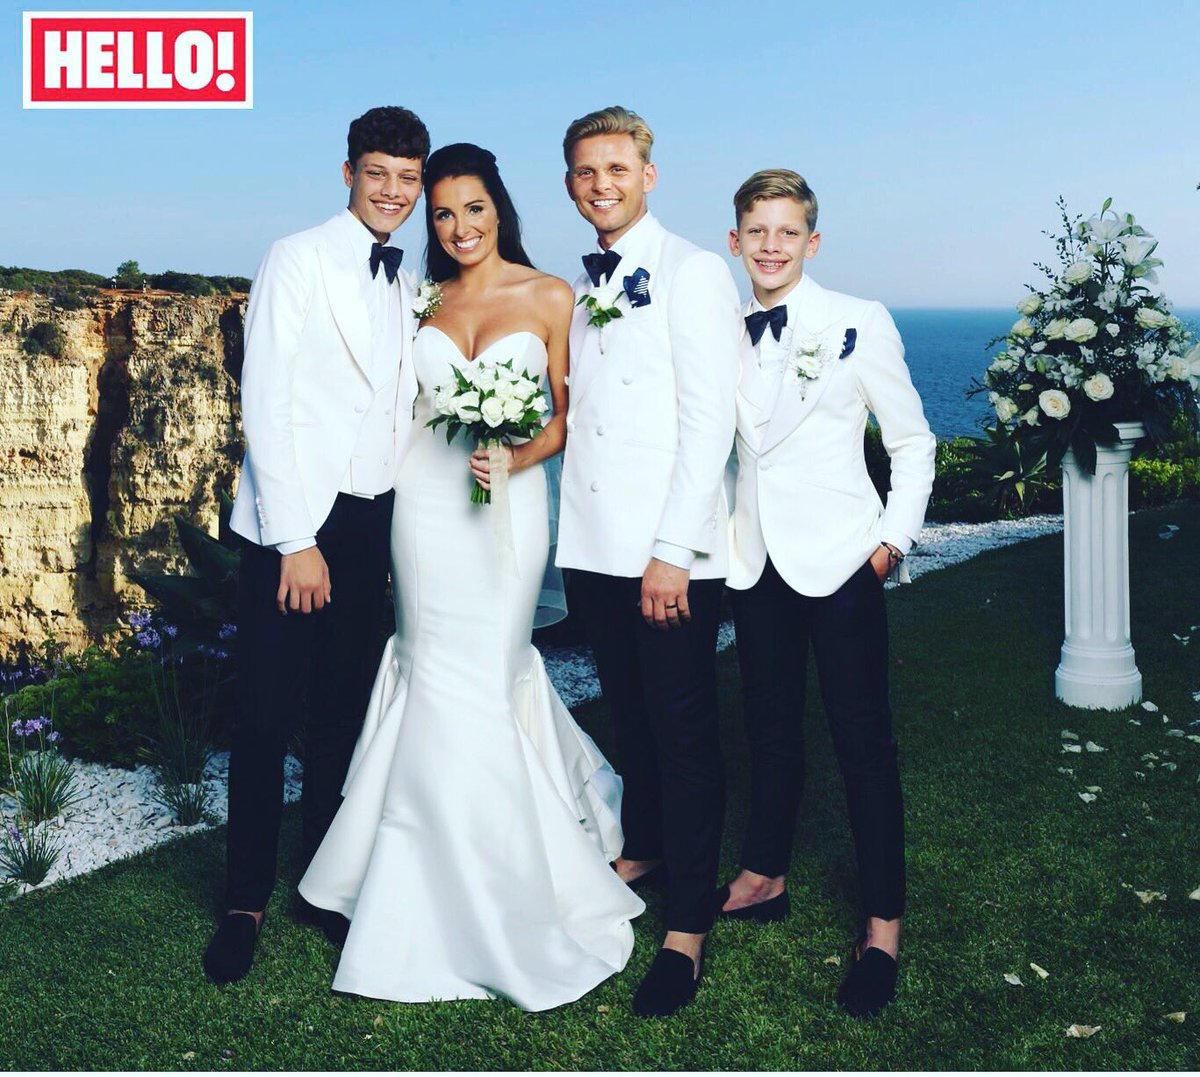 jeff brazier on twitter quotcan�t wait to share our